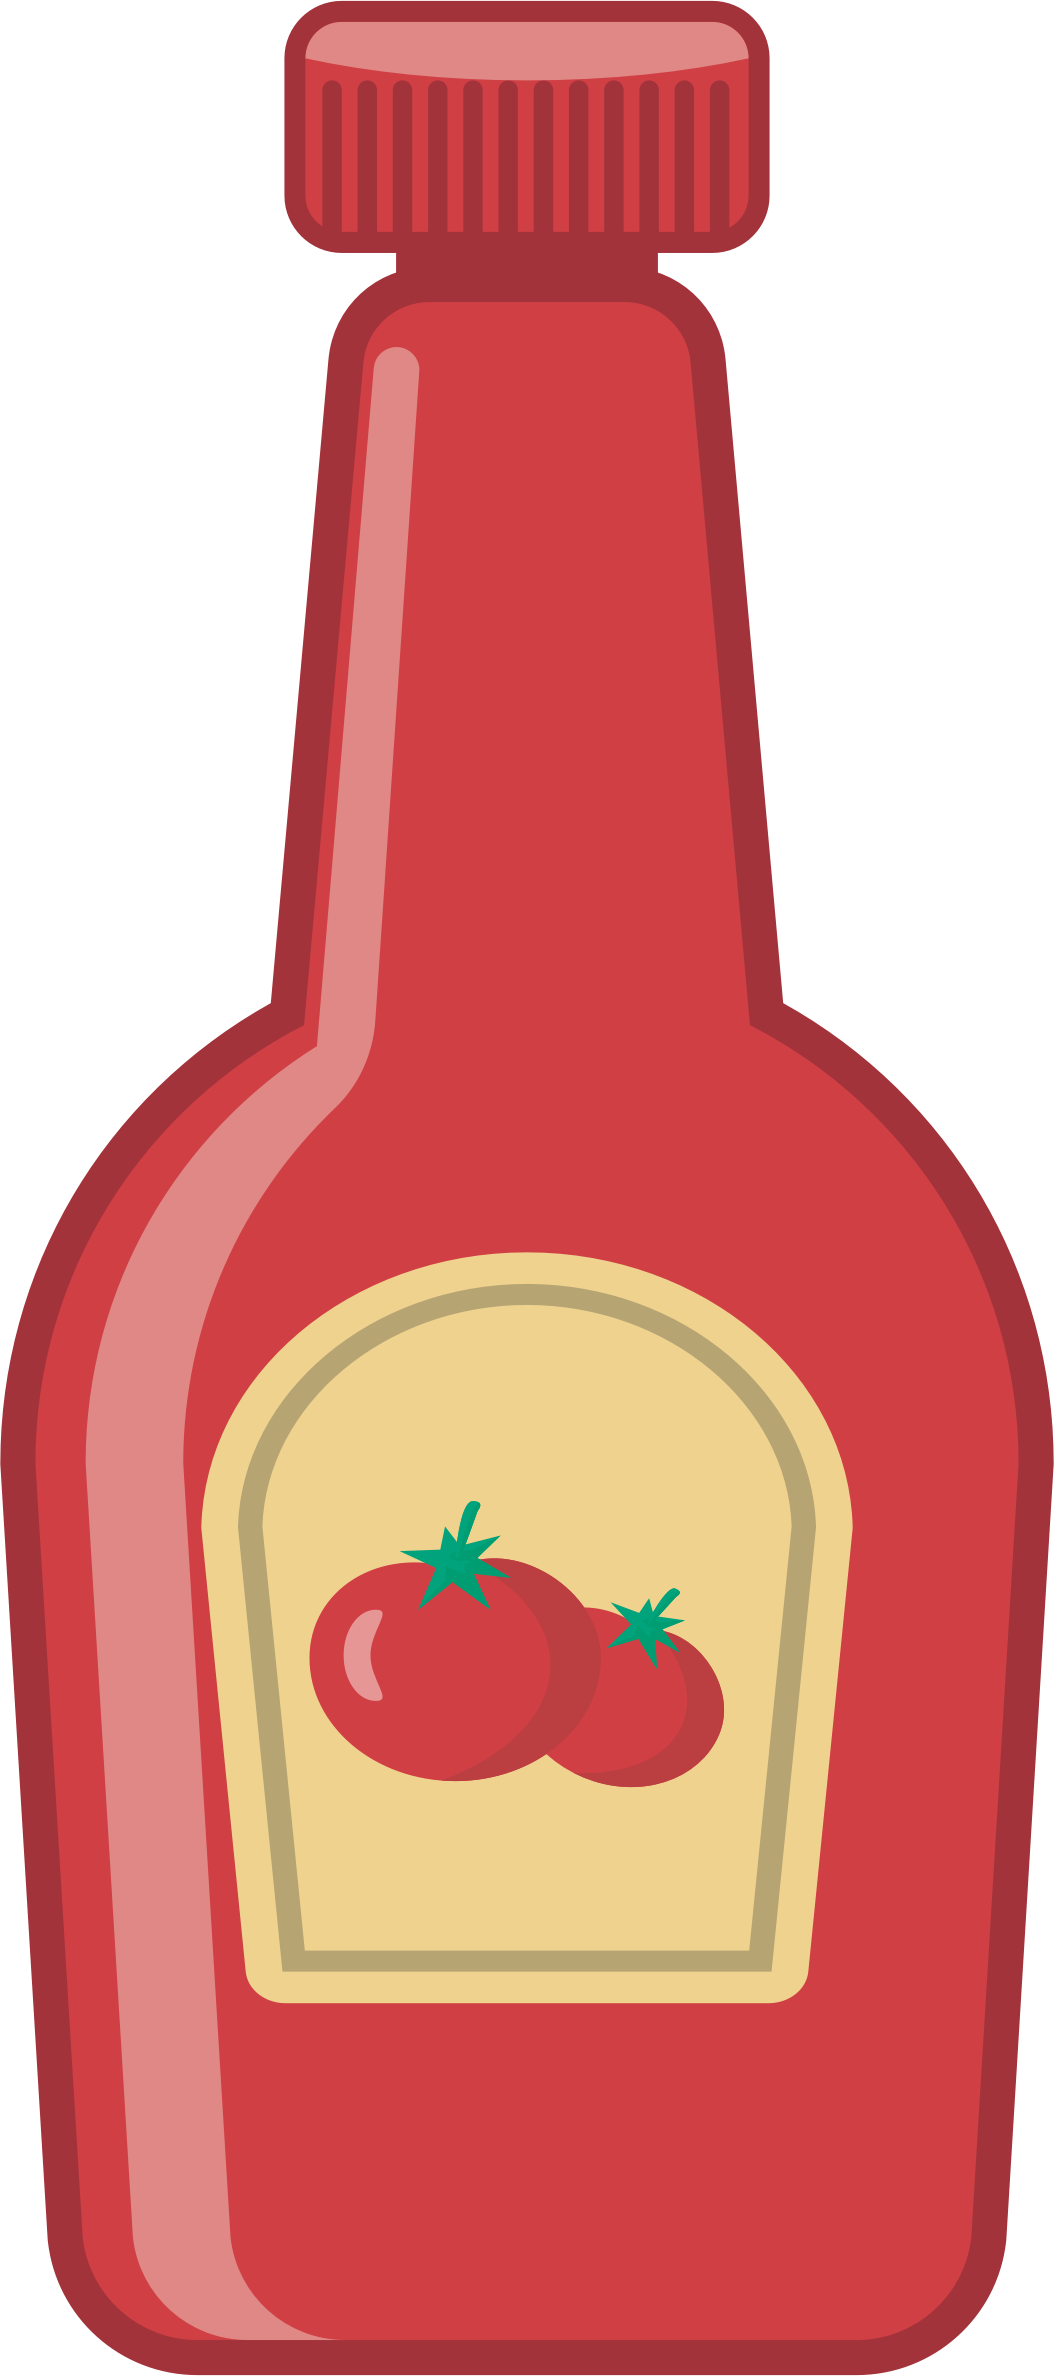 Ketchup Bottle by oksmith